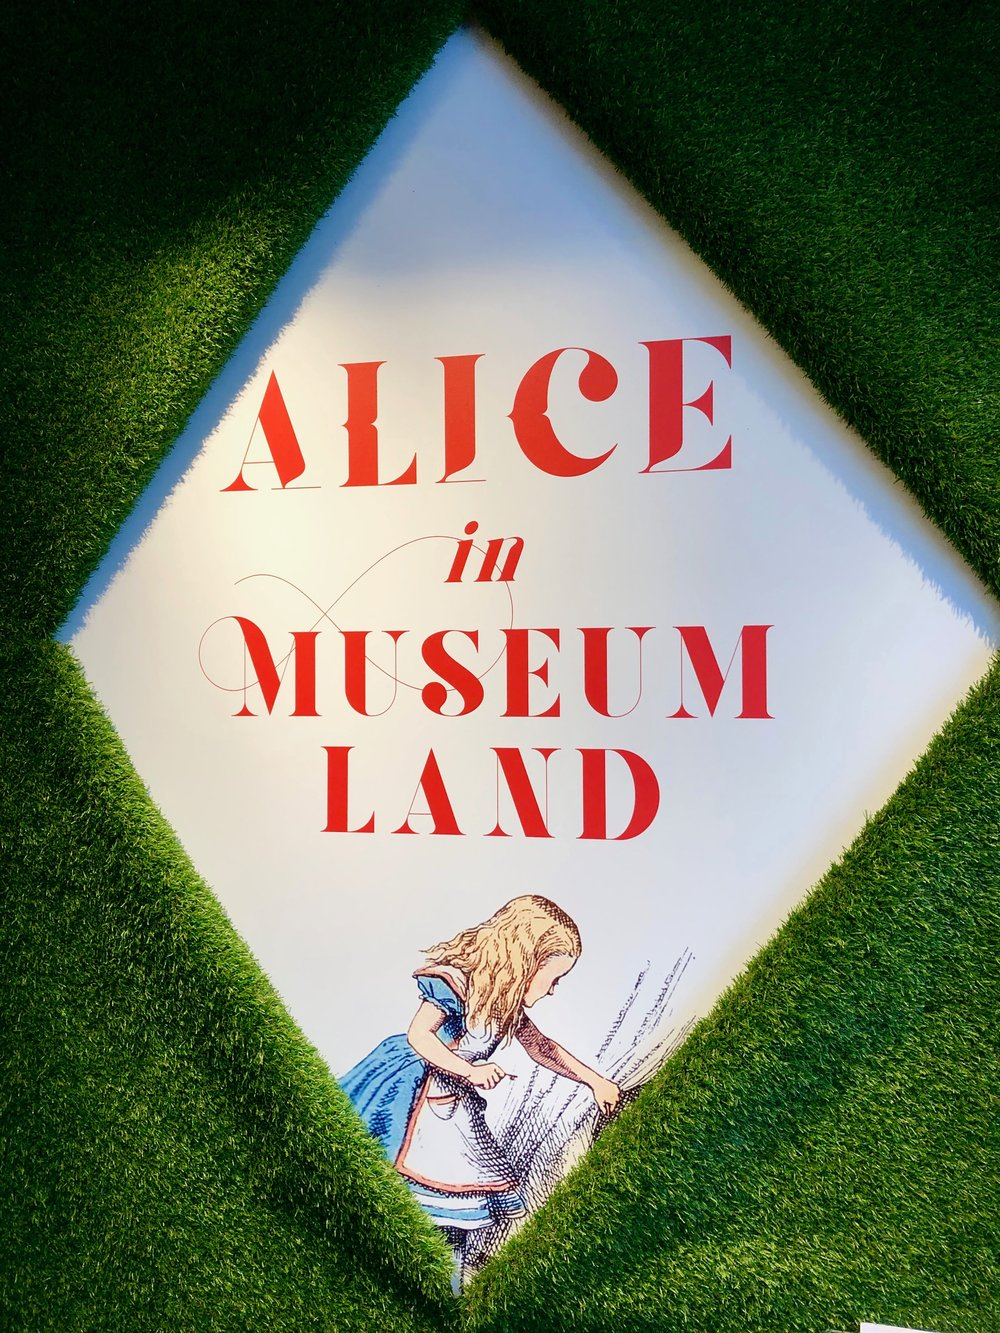 Alice in Museumland exhibit